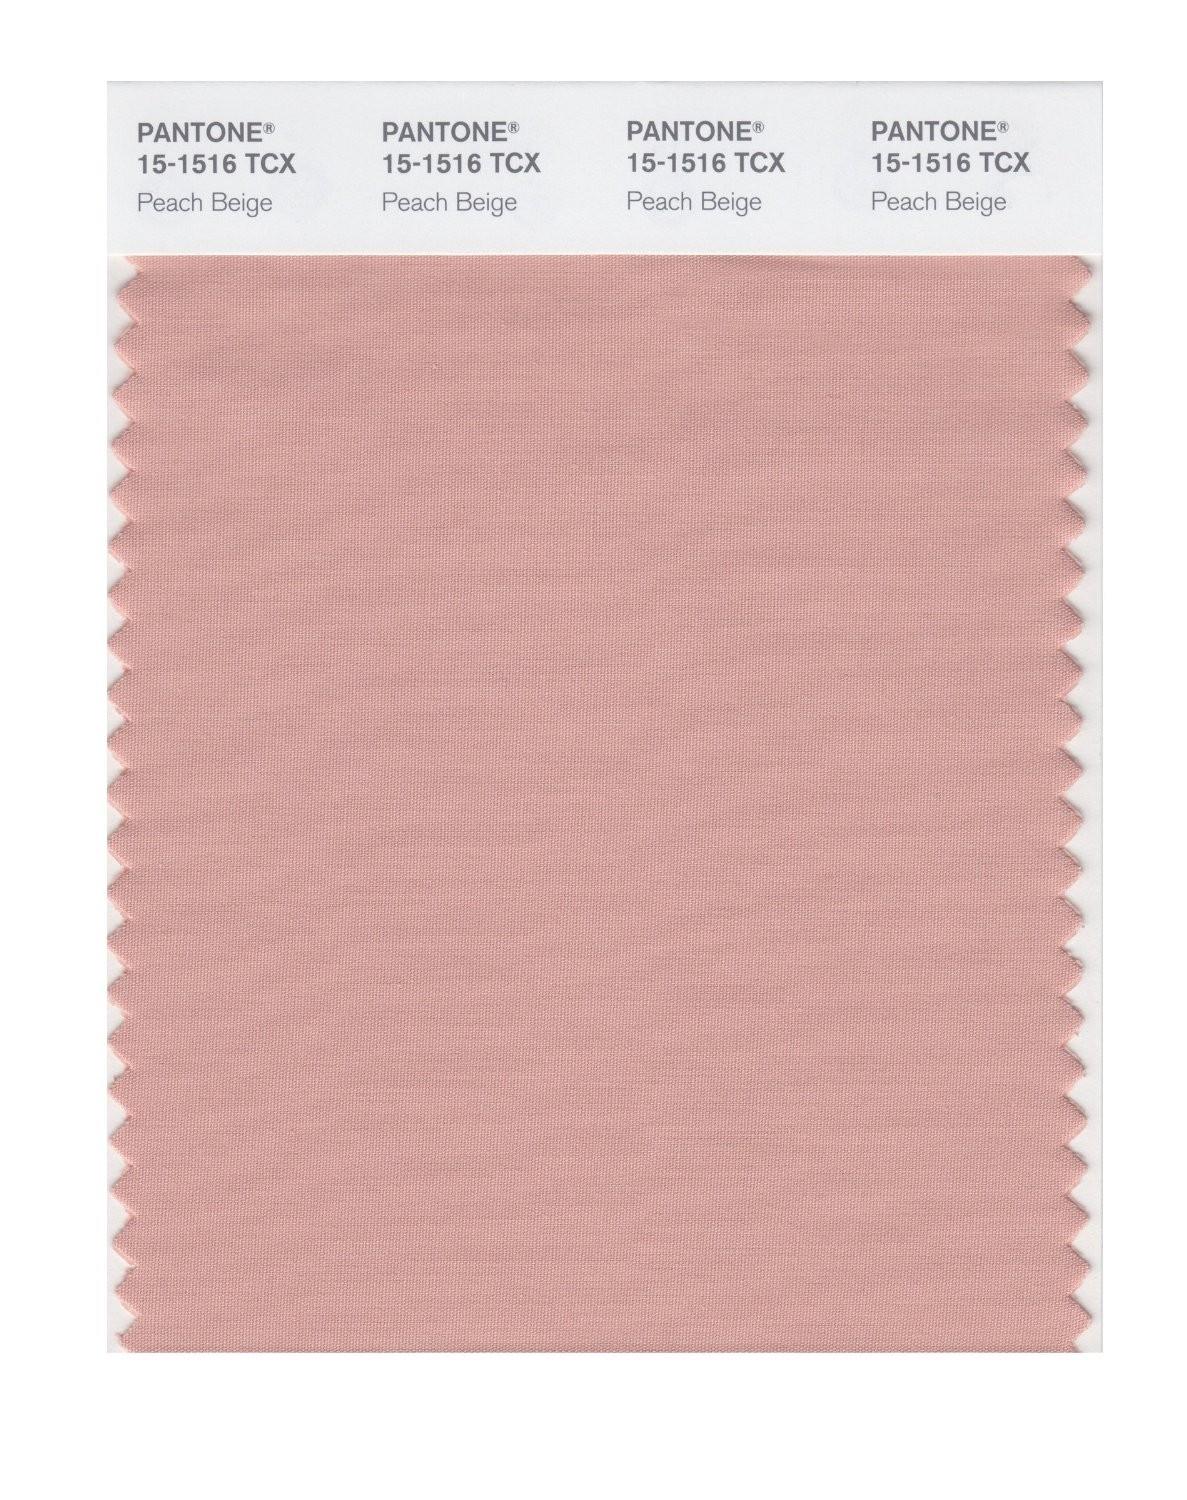 Pantone 15-1516 TCX Swatch Card Peach Beige